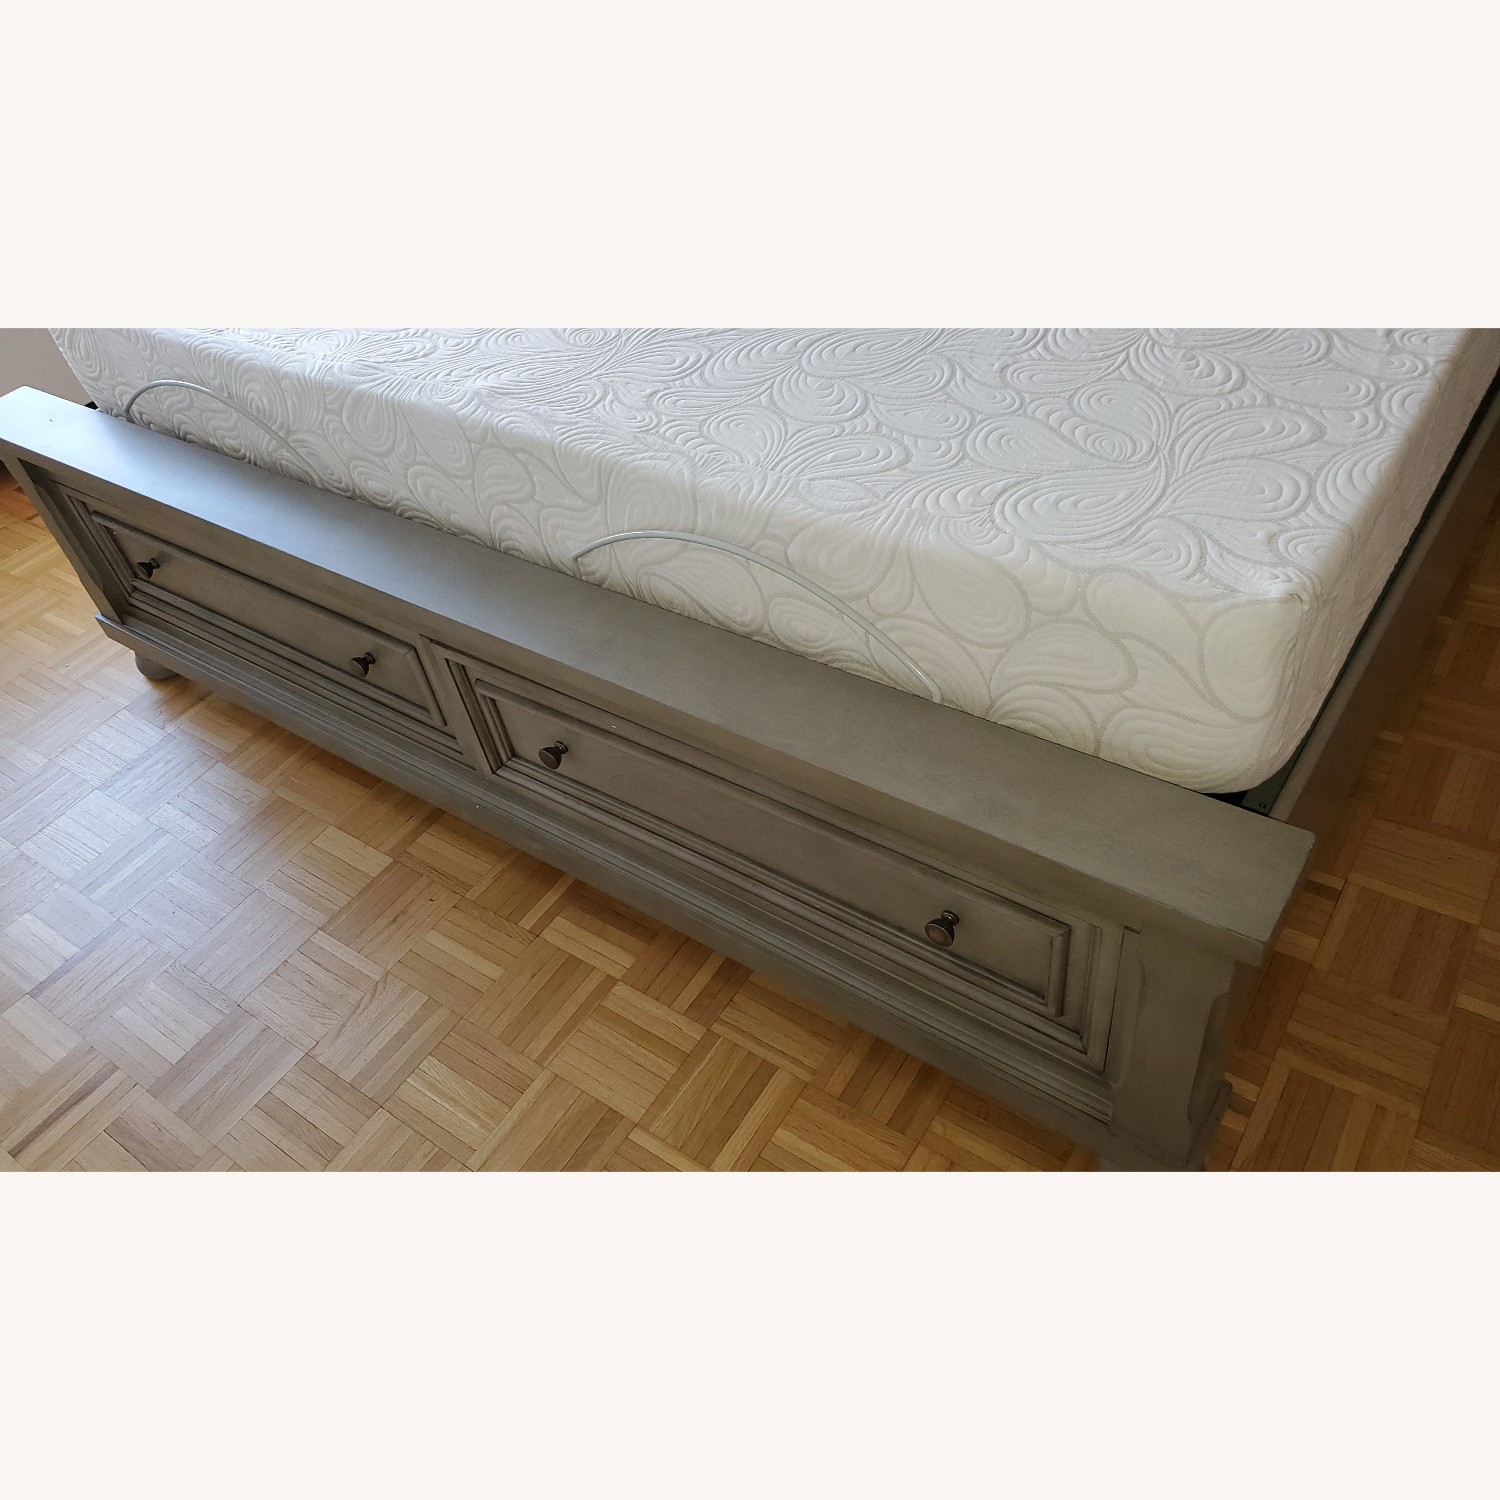 Ashley Furniture King Sleigh Bed with Storage - image-4